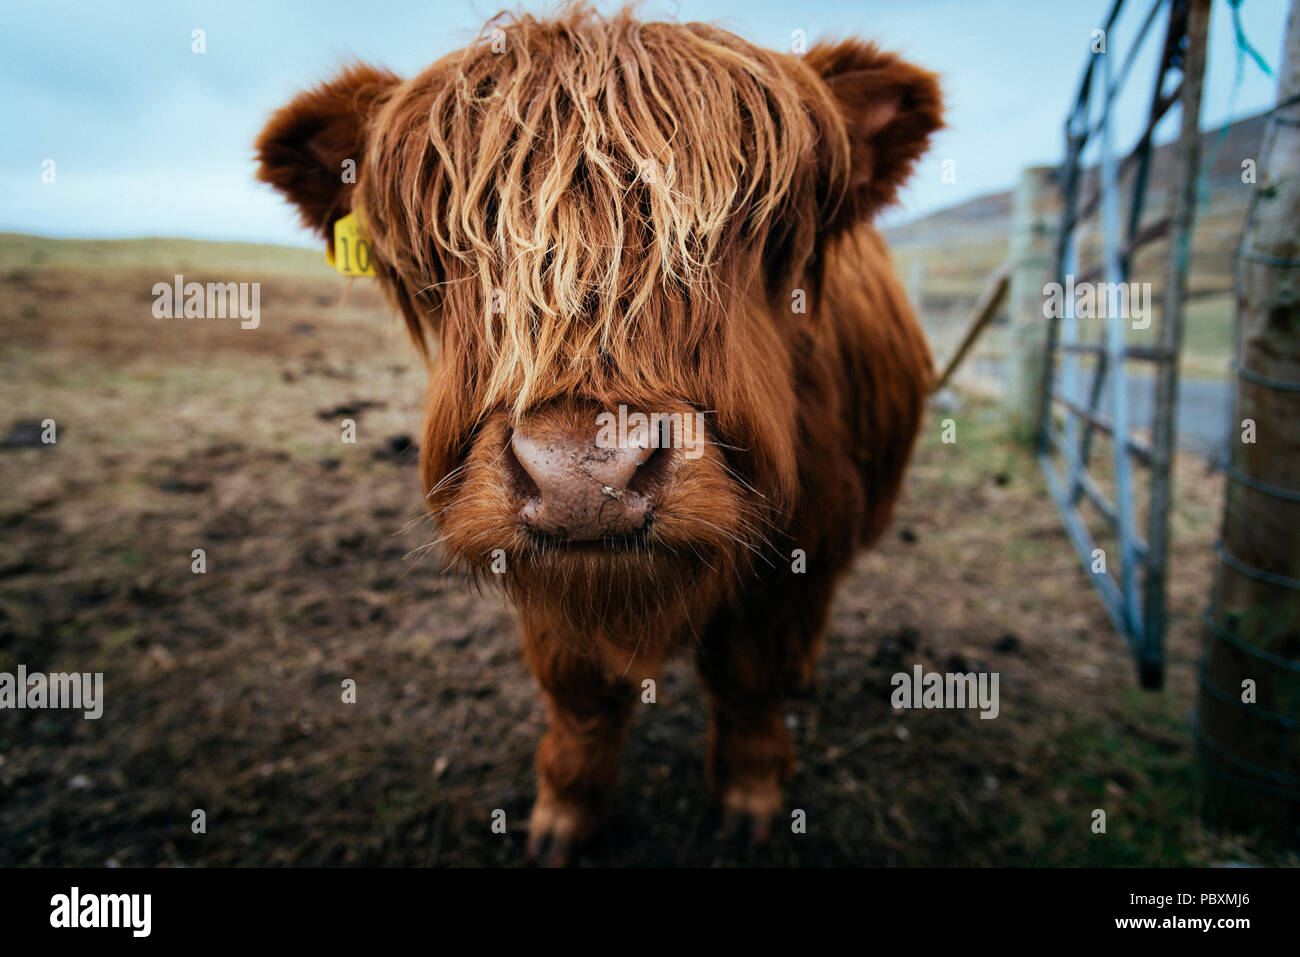 Vache Highland, Isle of Harris, Scotland, UK, Europe Photo Stock